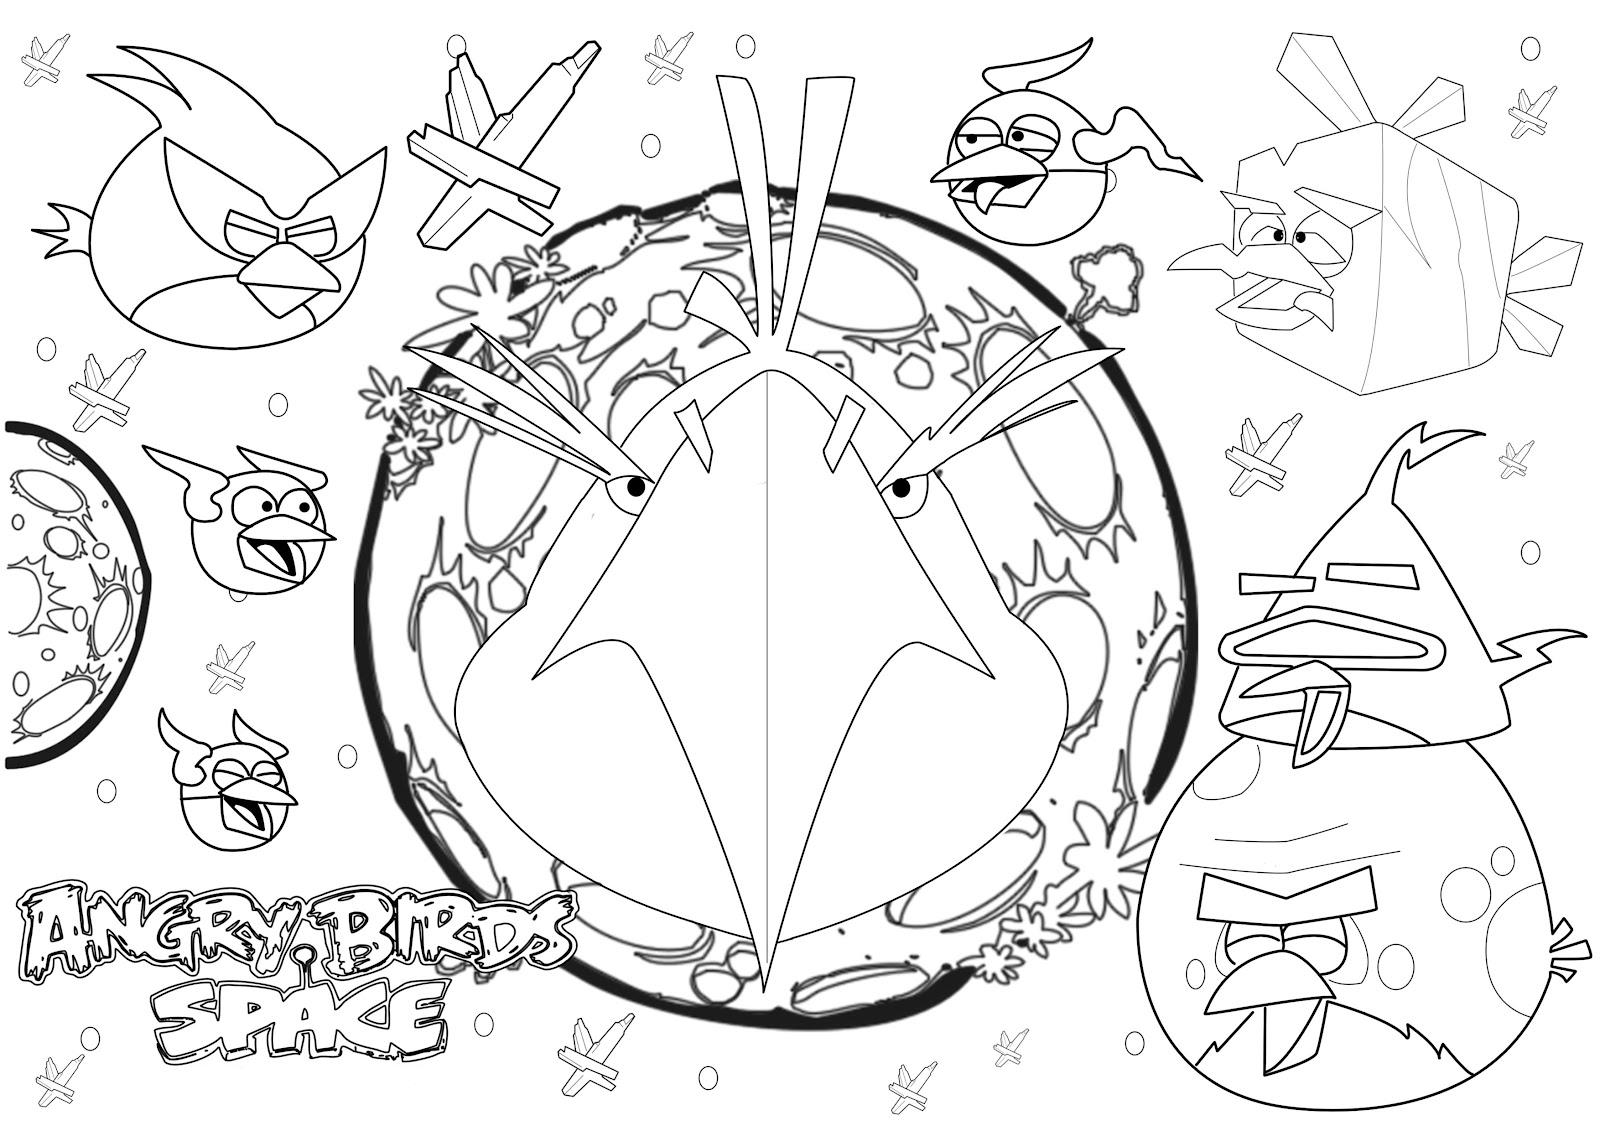 Free Coloring Pages Of Angry Birds Space Games